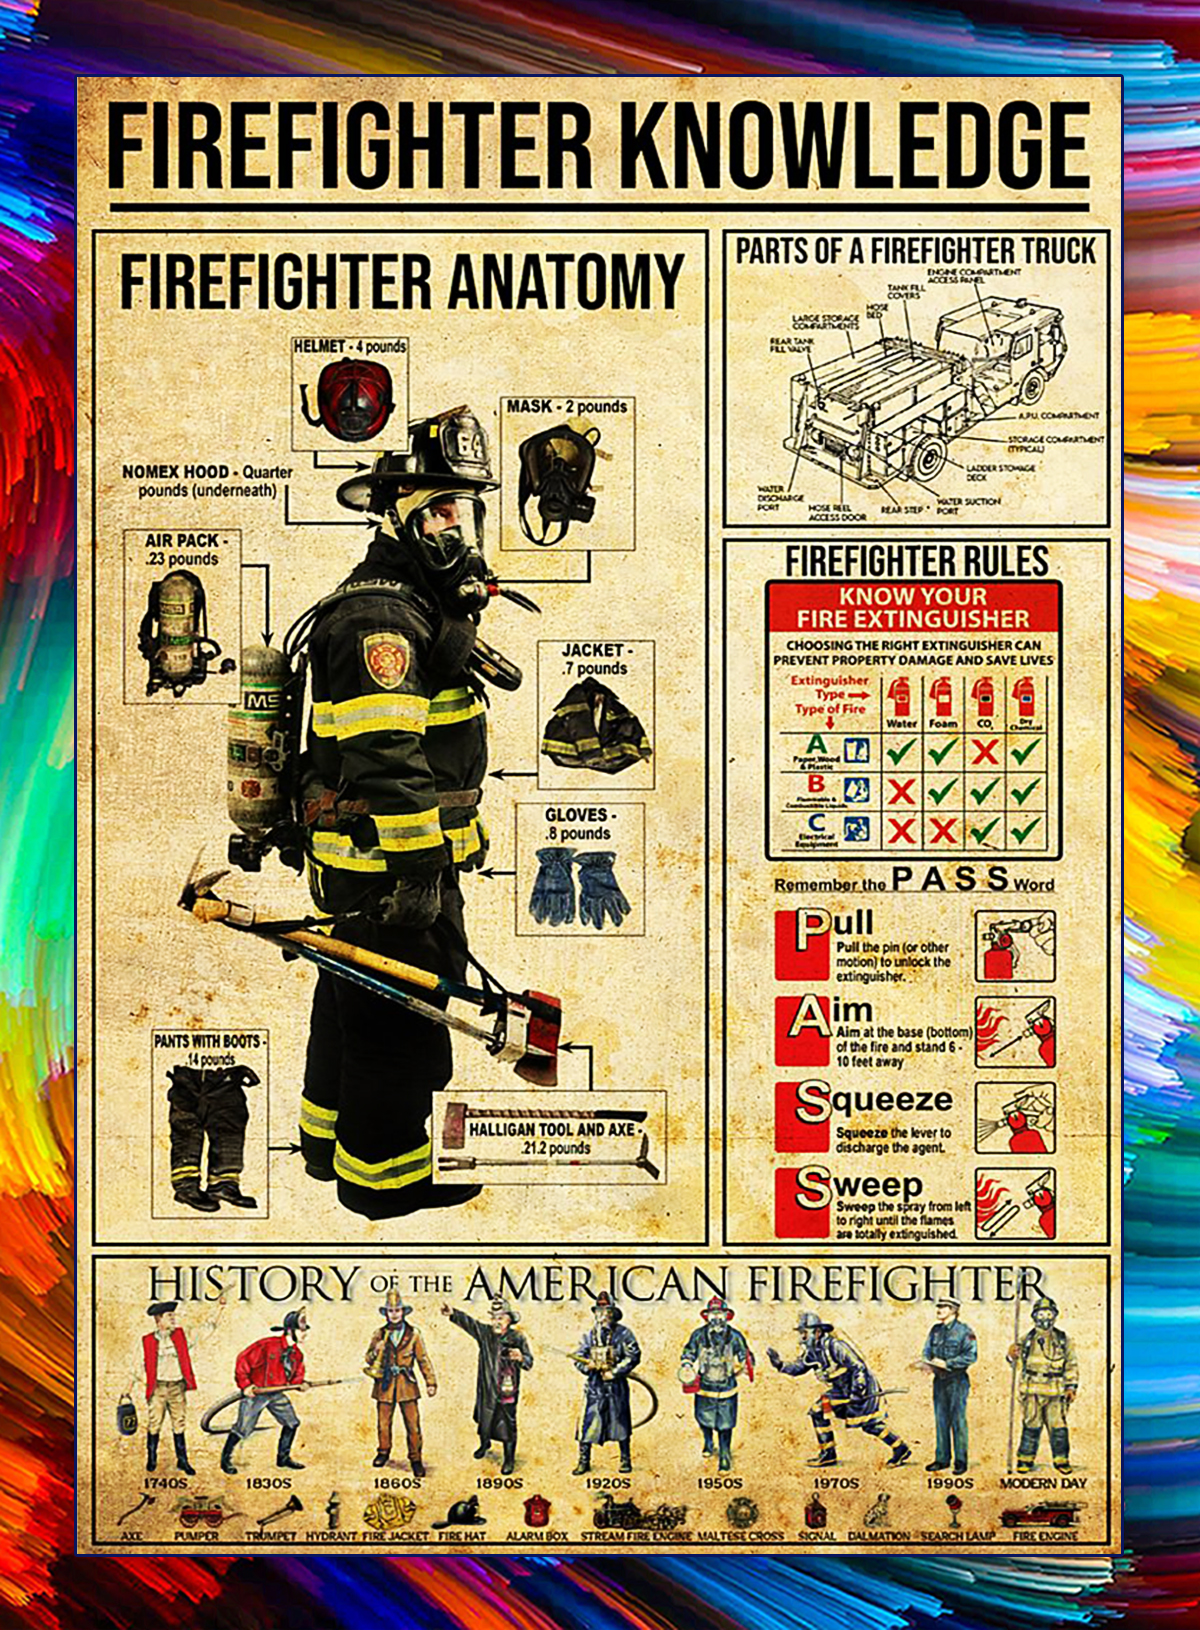 Firefighter knowledge poster